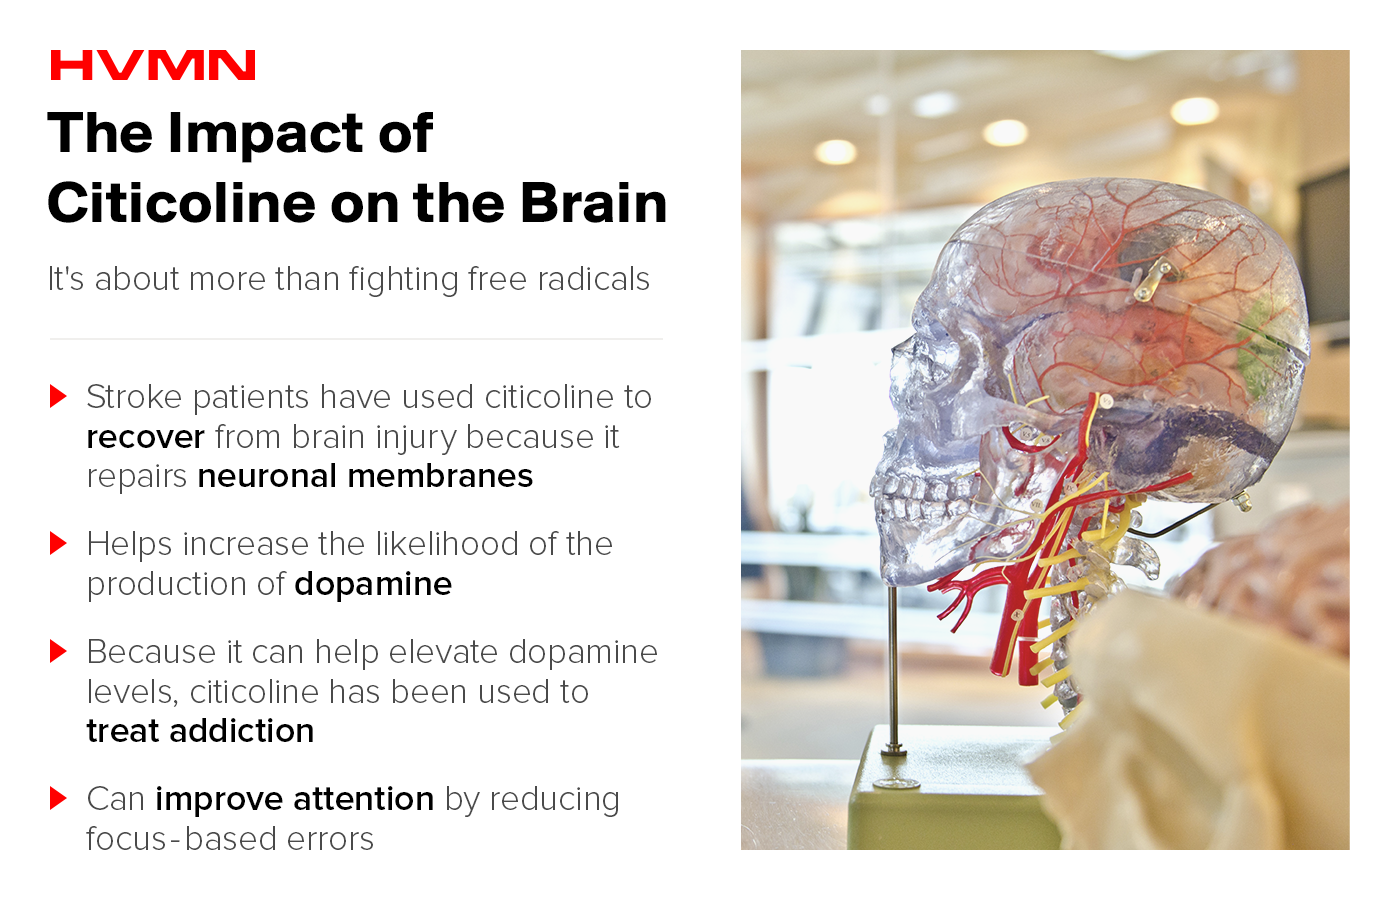 A model of the human brain in a skull, showing the impact of citicoline on the brain